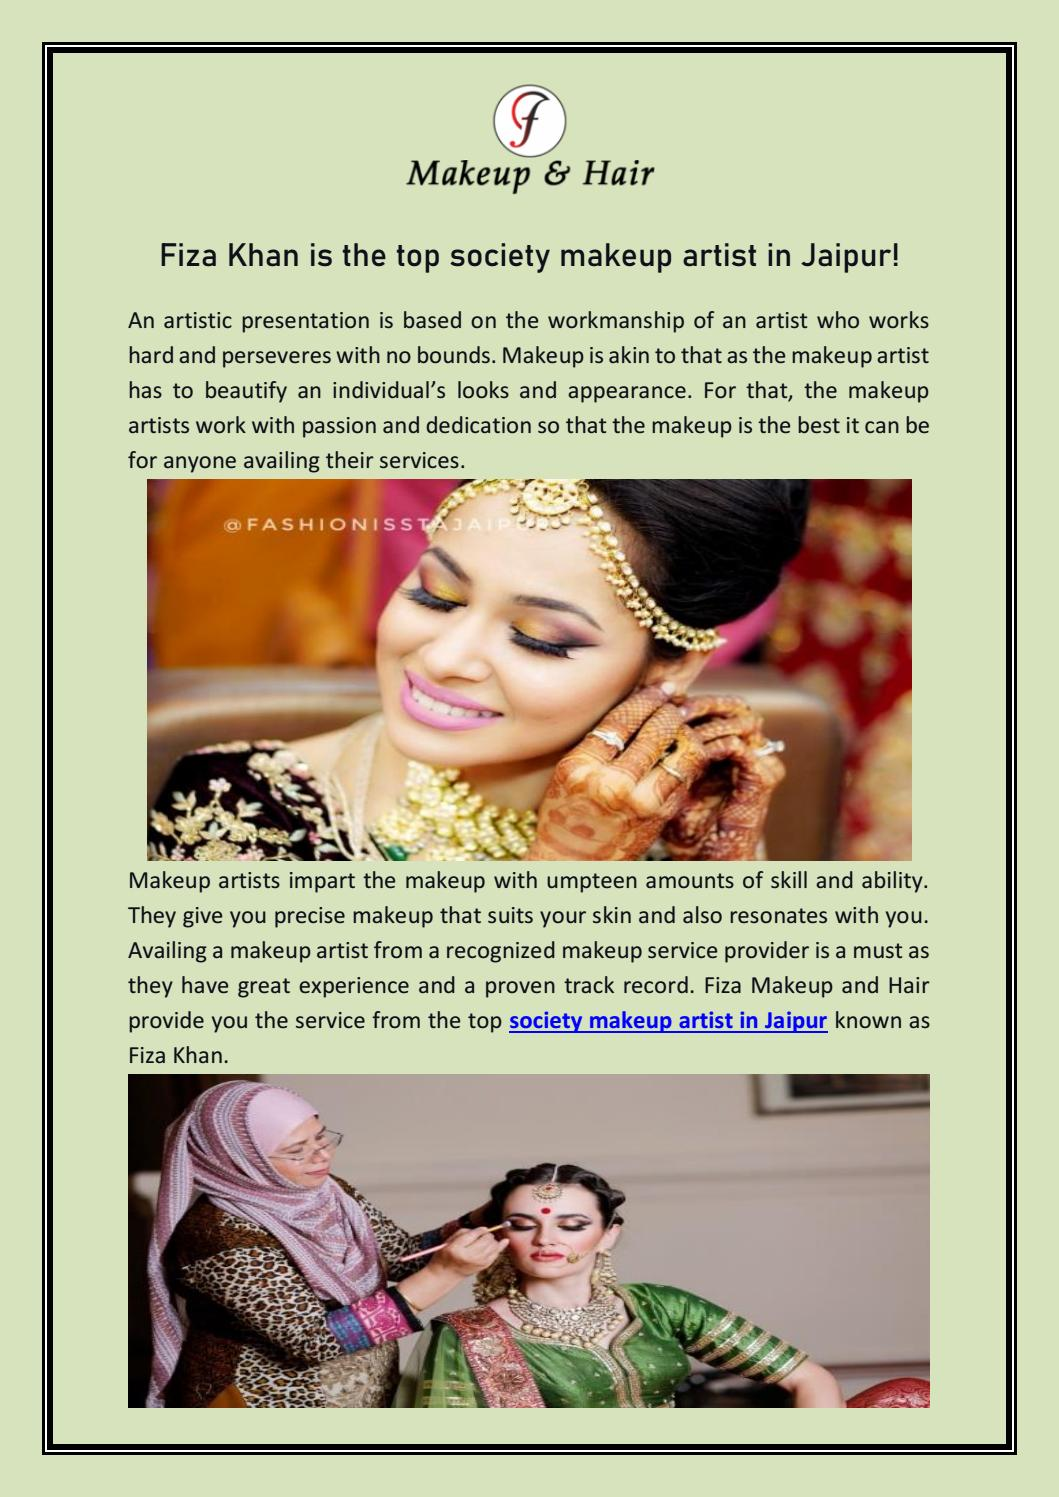 Fiza Khan Is The Top Society Makeup